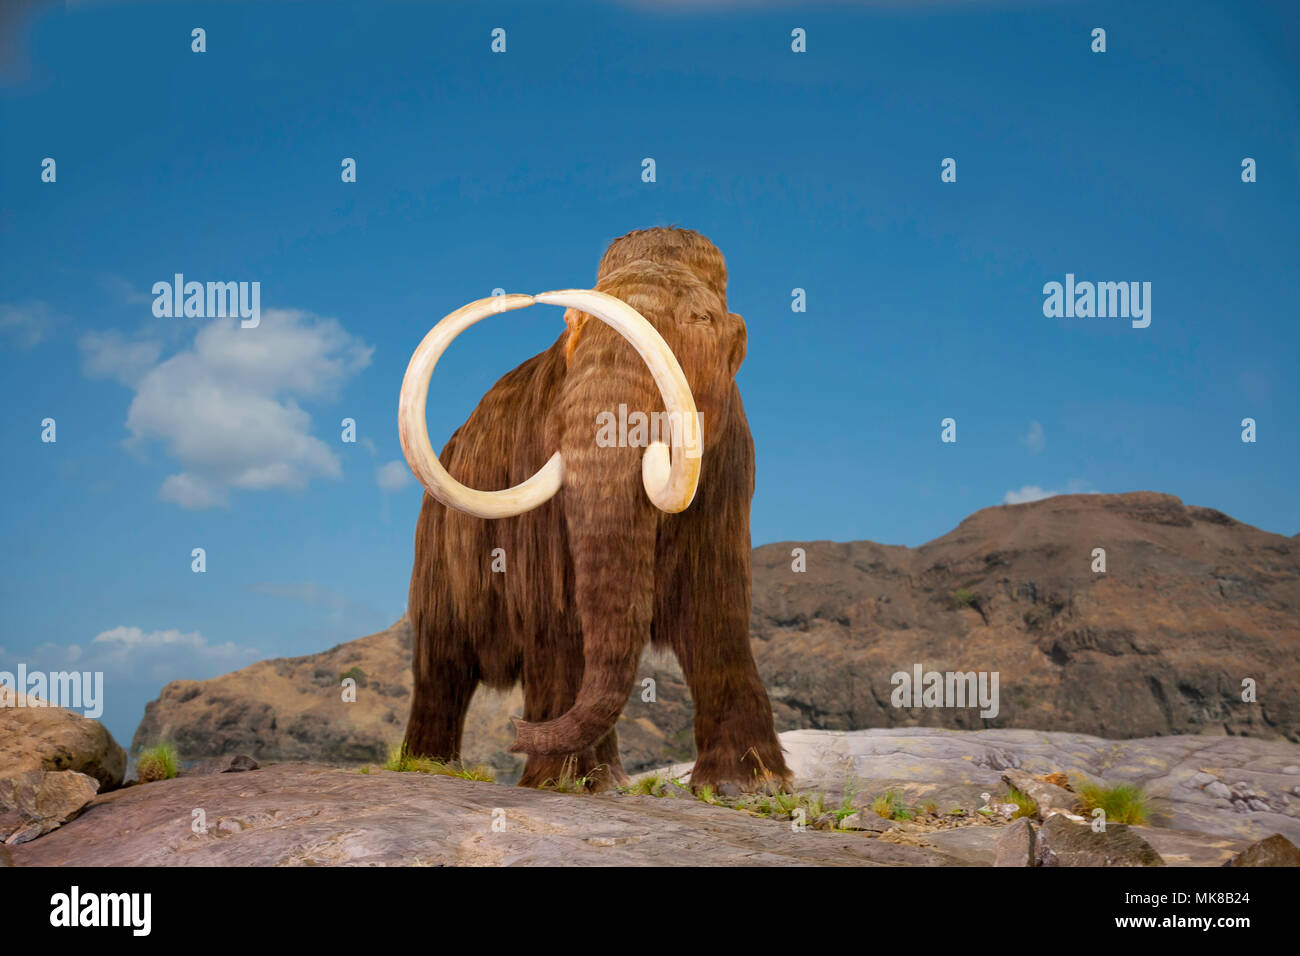 The woolly mammoth, Mammuthus primigenius, was a species of mammoth that lived during the Pleistocene epoch, and was one of the last in a line of mamm - Stock Image